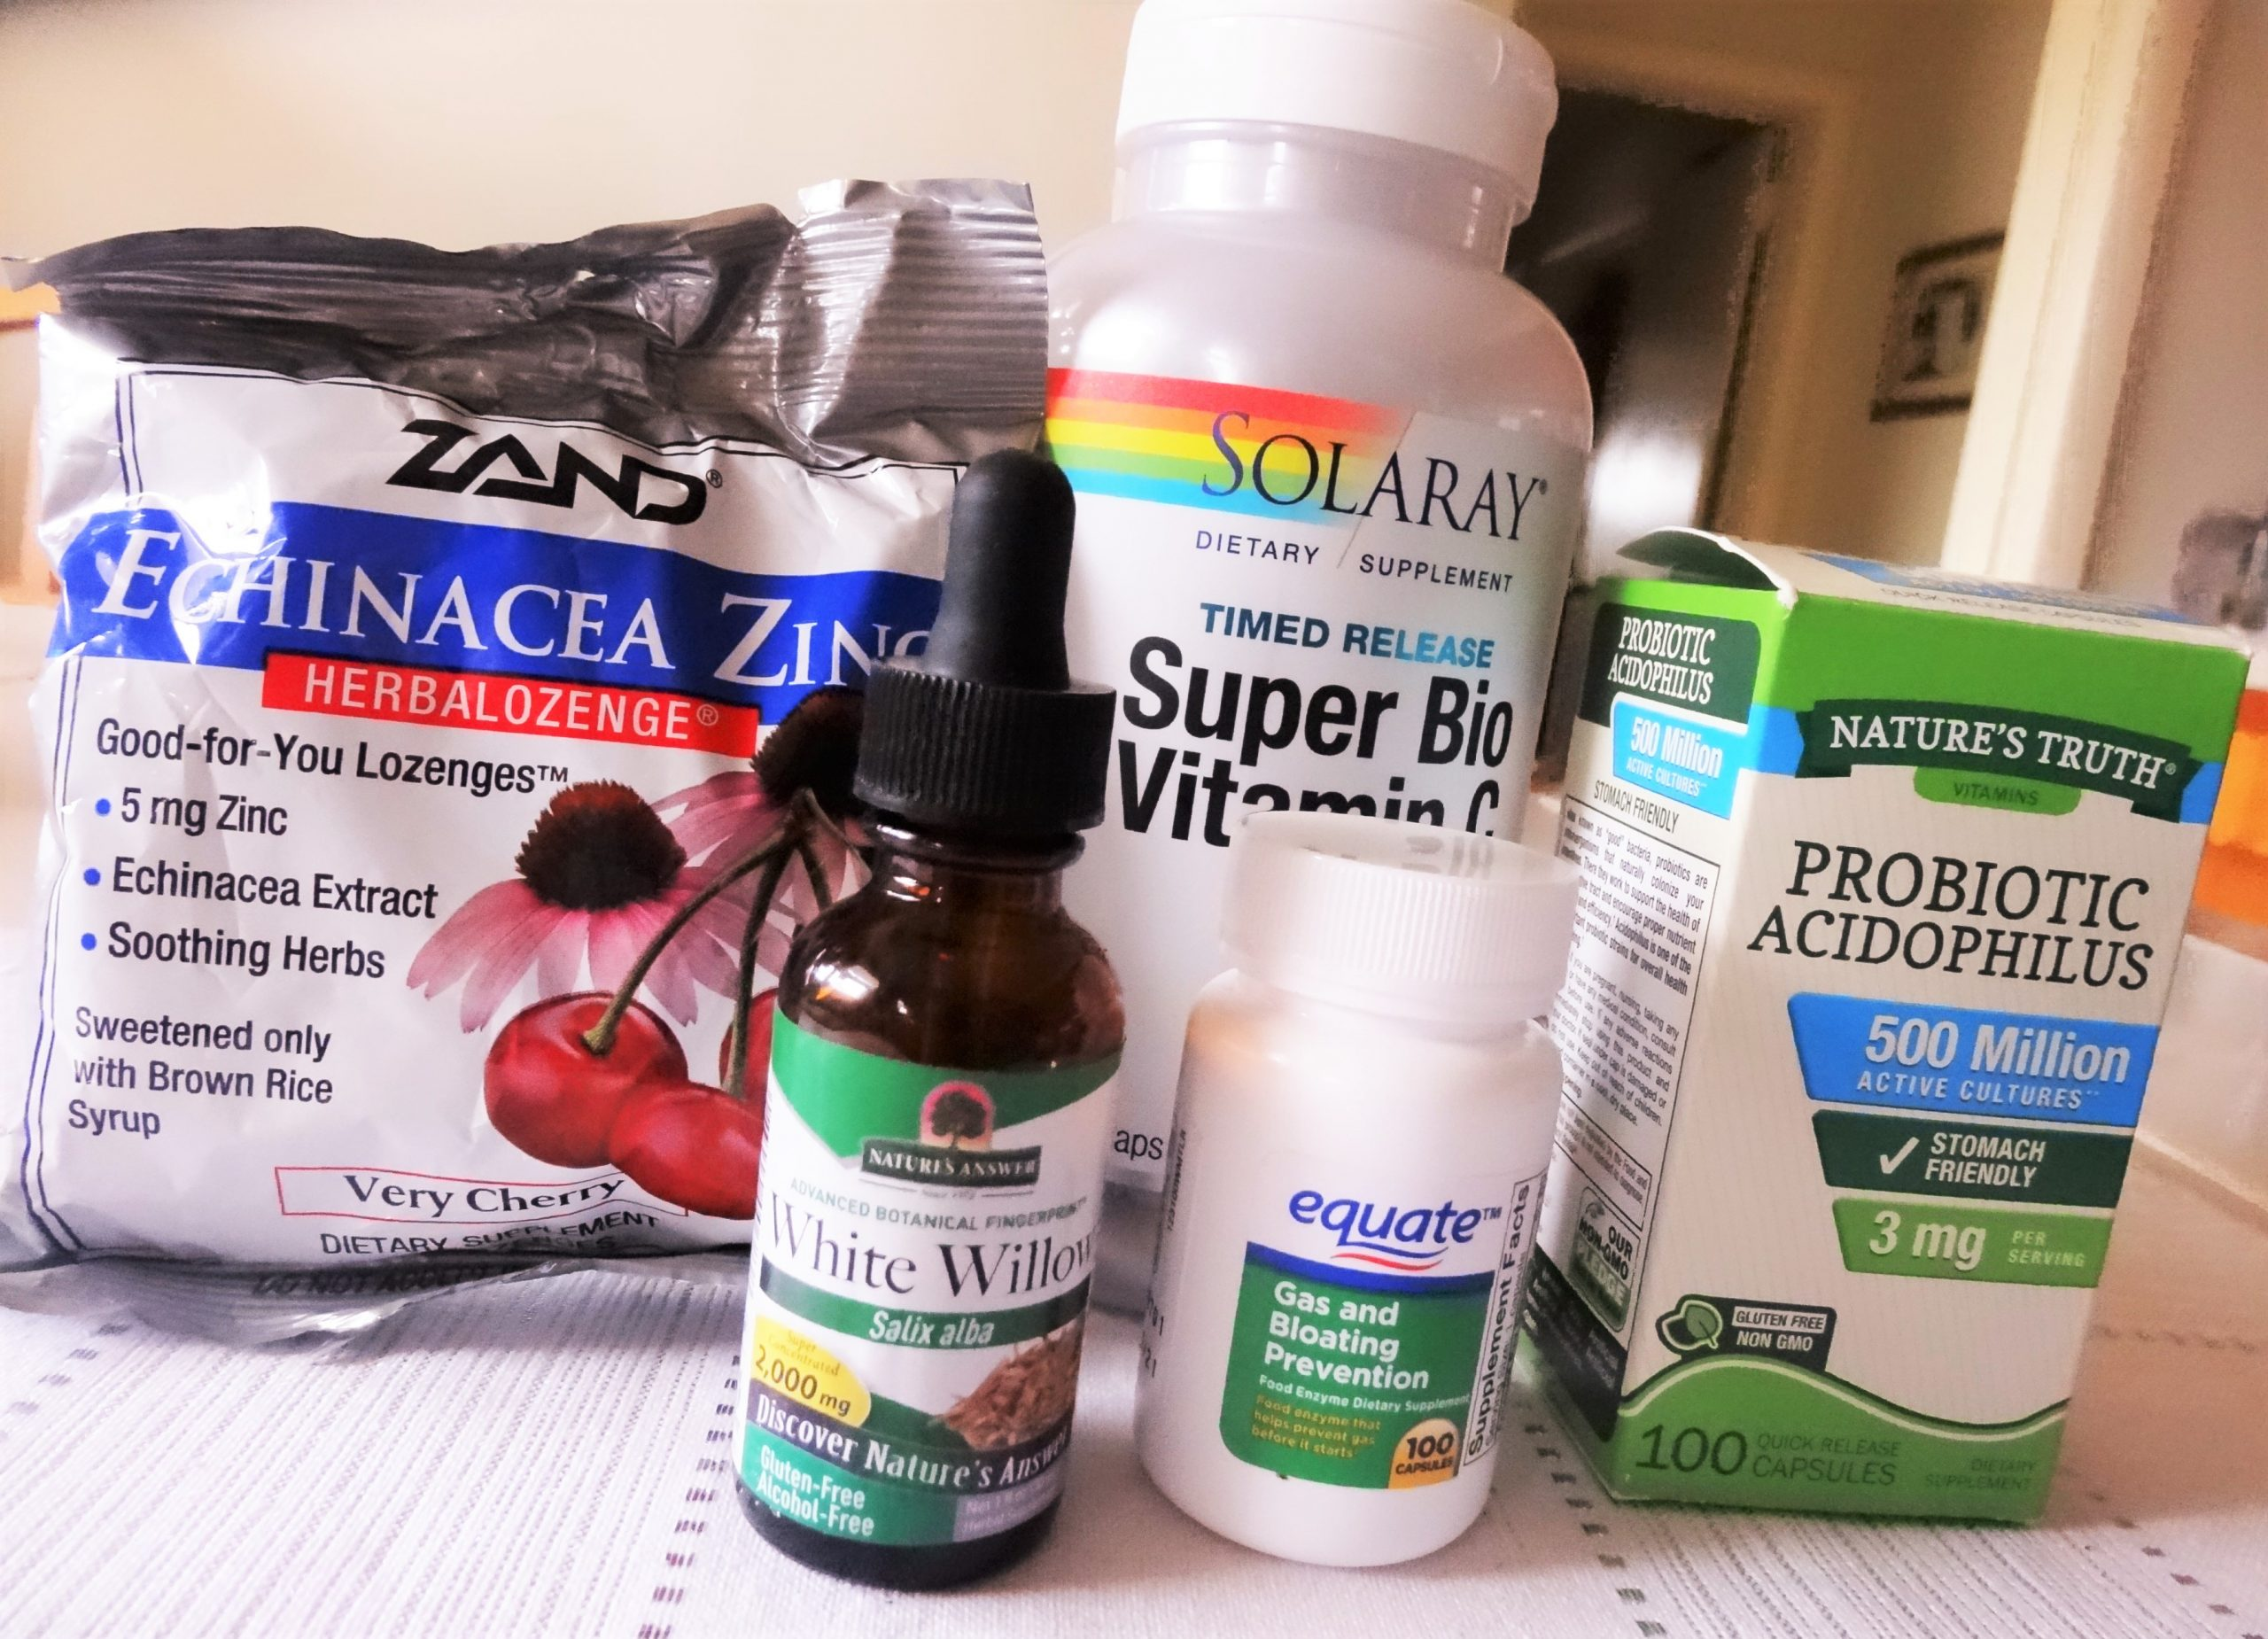 My 7 reasons to supplement: occasional use supplements